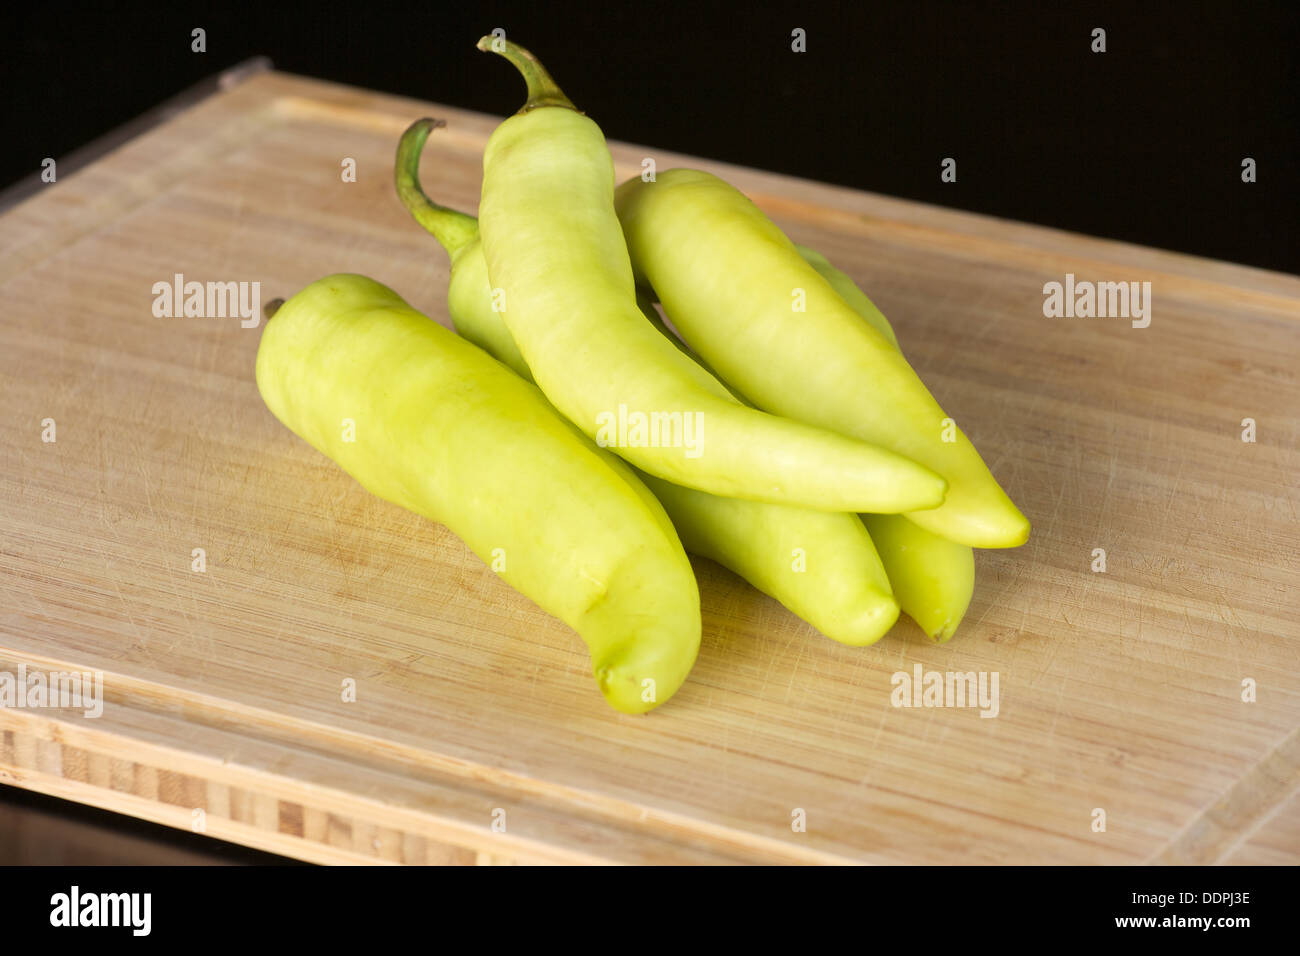 banana peppers on a cutting board - Stock Image